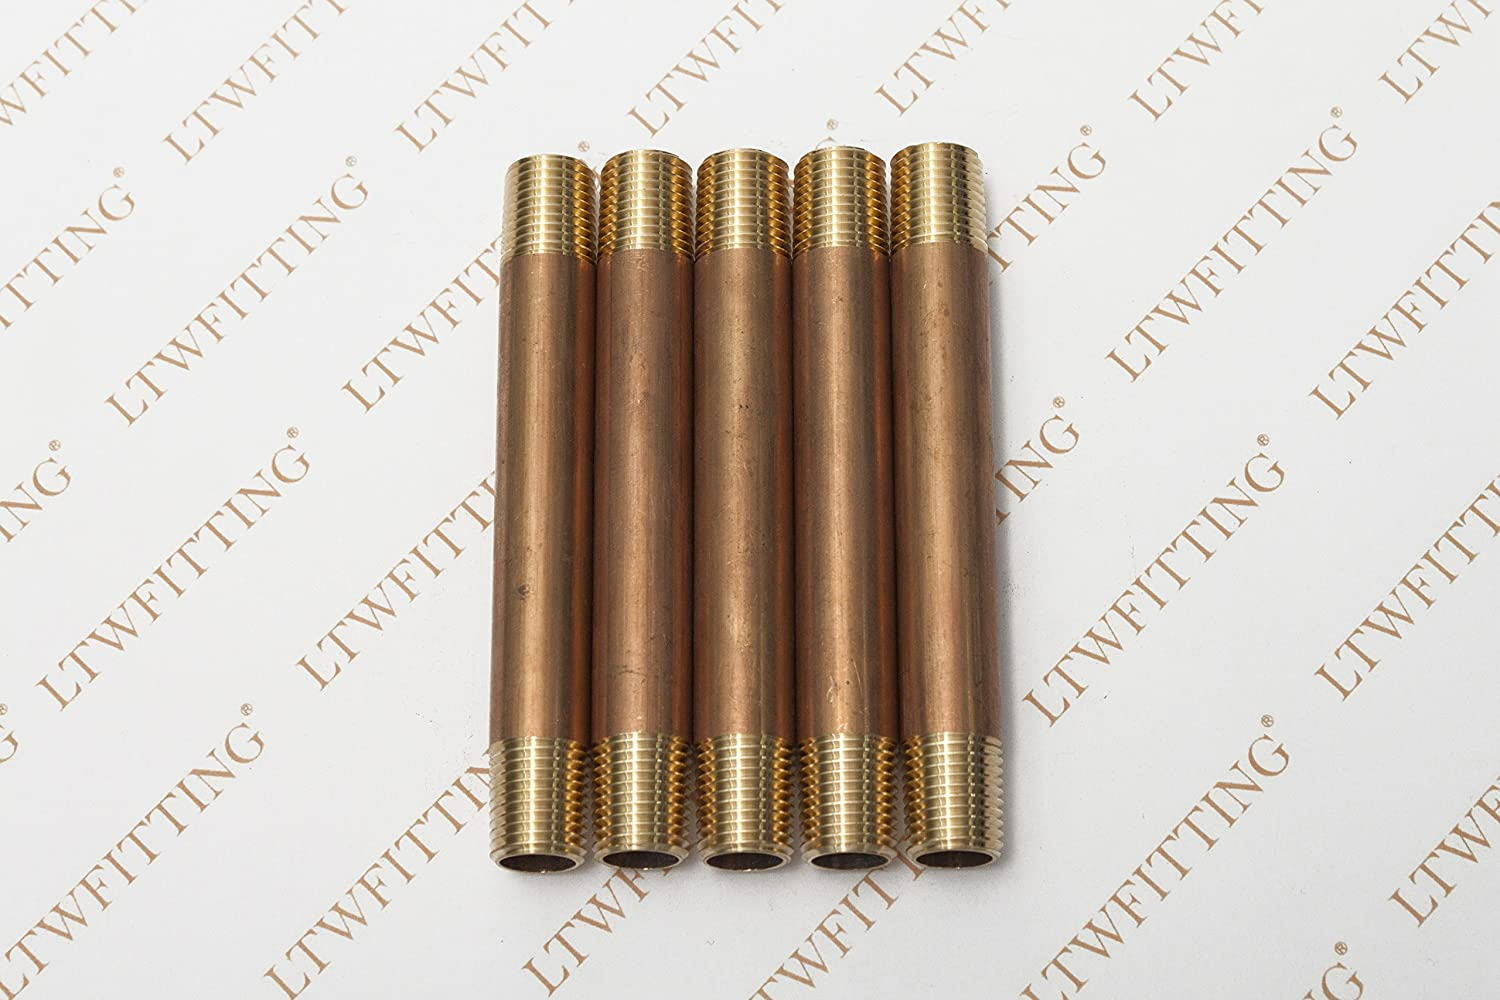 Pack of 5 LTWFITTING Brass Pipe 4 Long Nipple Fitting 1//4 Male NPT Air Water